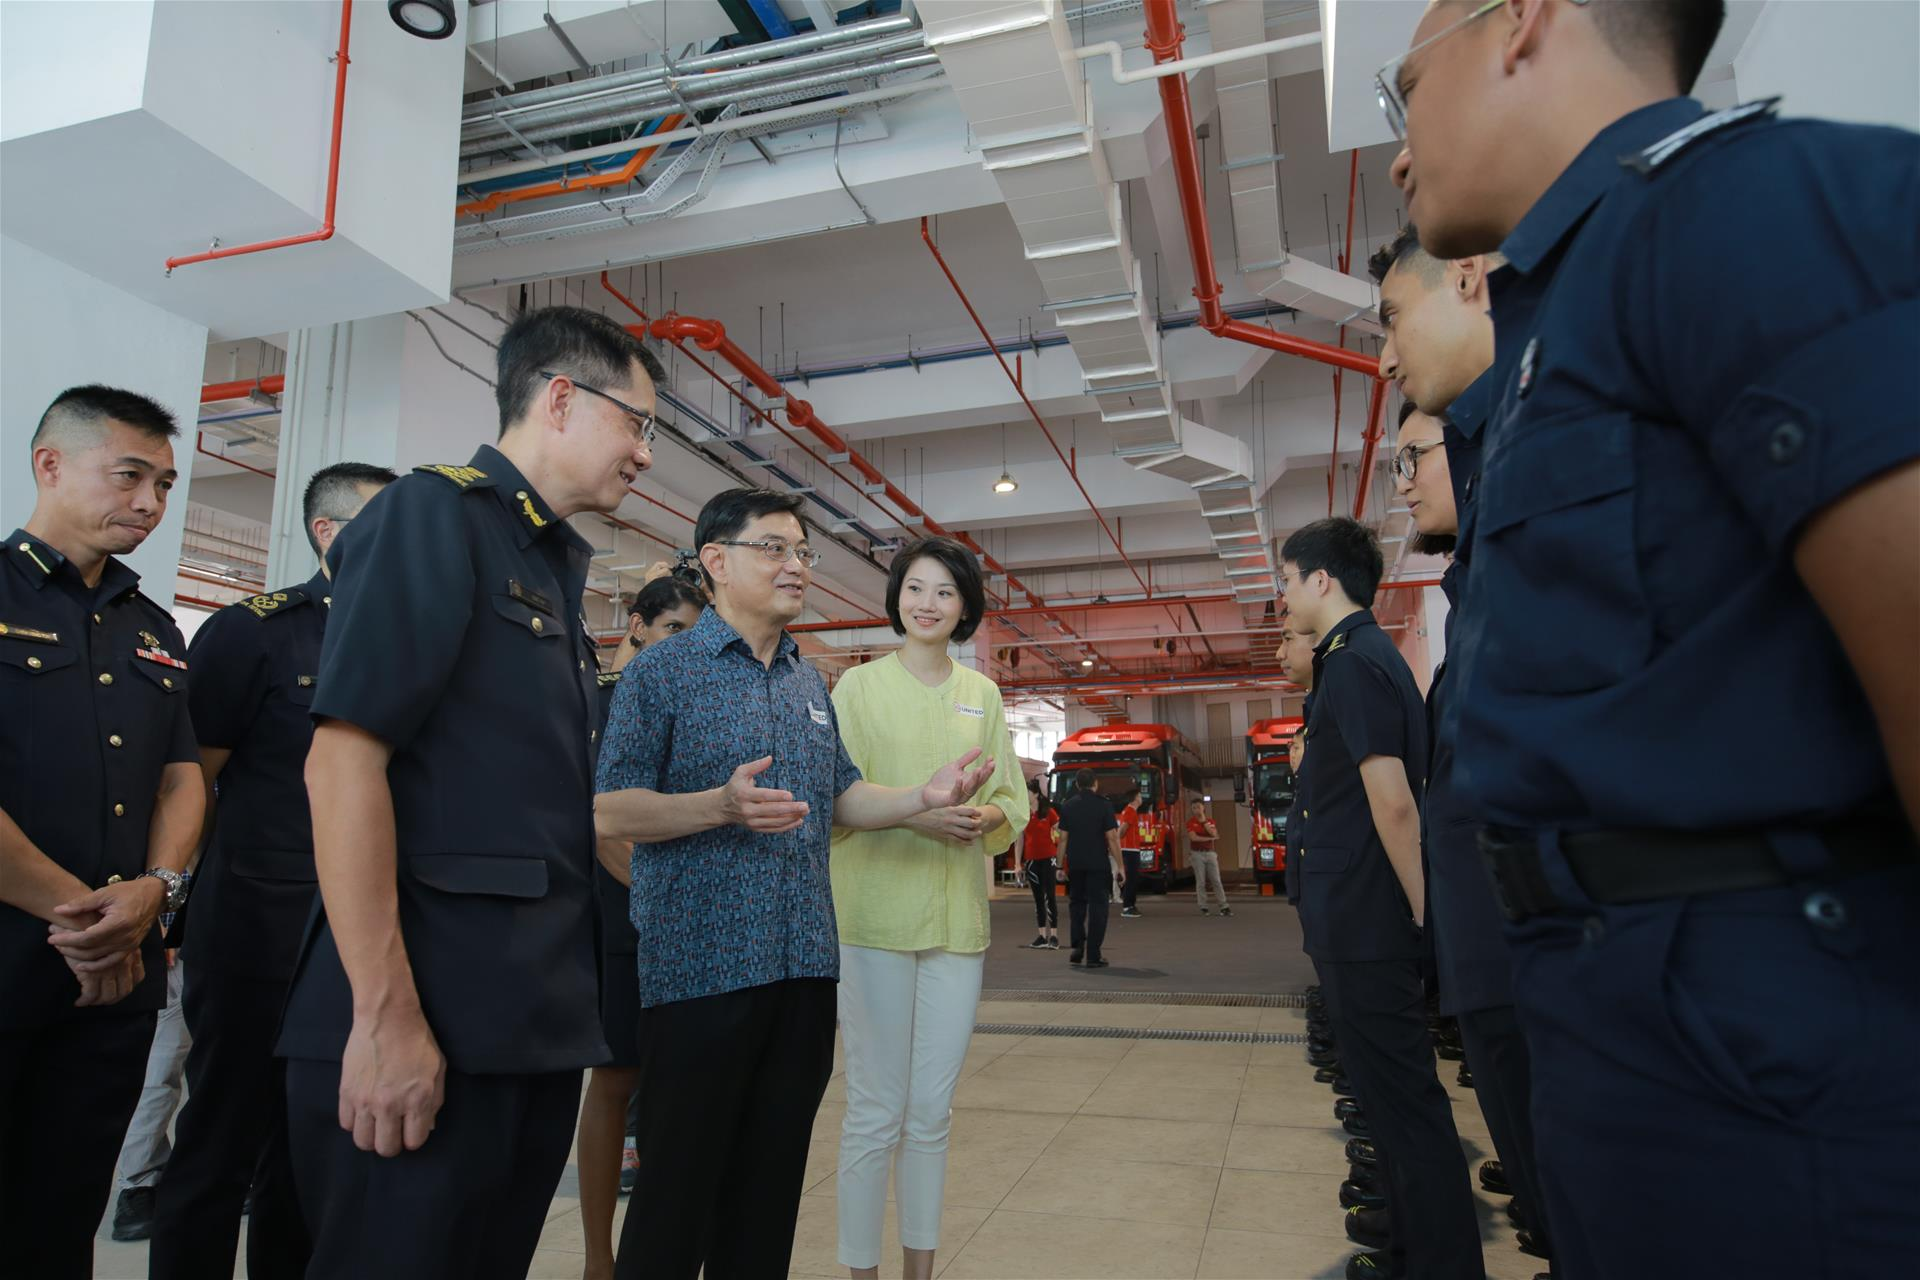 Mr Heng Swee Keat, Deputy Prime Minister and Minister for Finance interacted with the SCDF personnel who have been deployed at the frontline since the start of the COVID-19 outbreak.